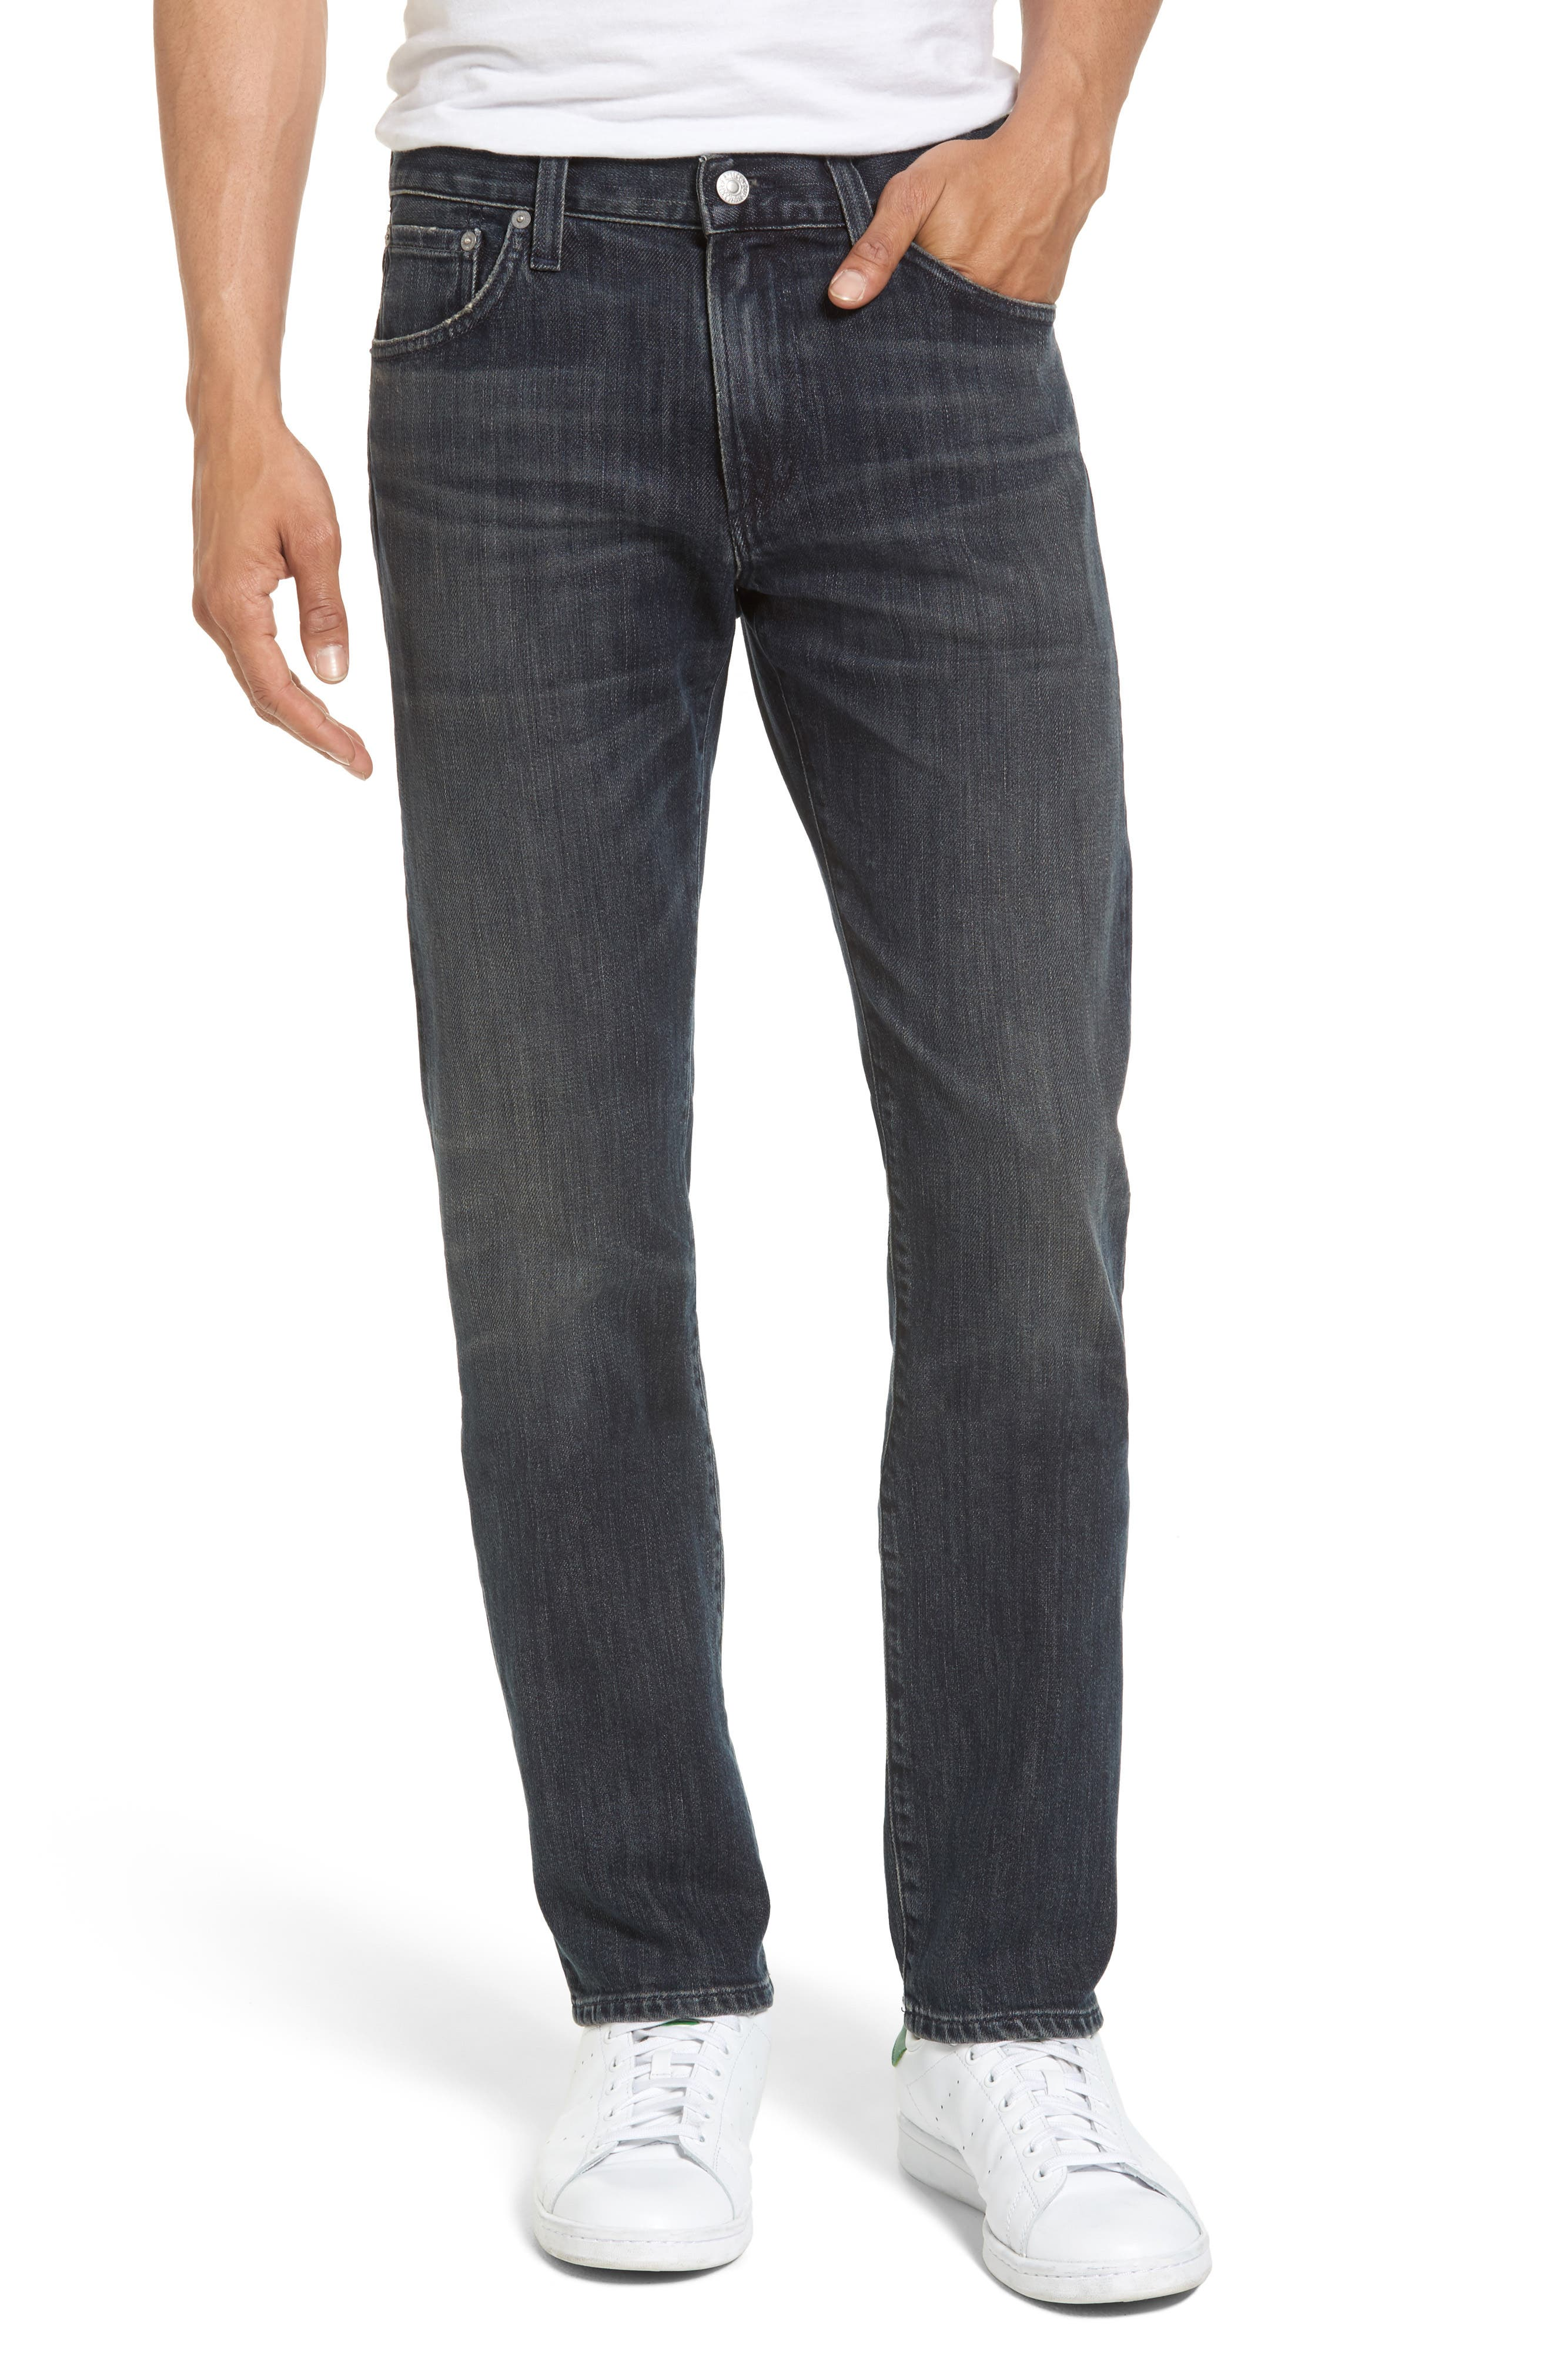 Alternate Image 1 Selected - Citizens of Humanity Gage Slim Straight Leg Jeans (Sycamore)